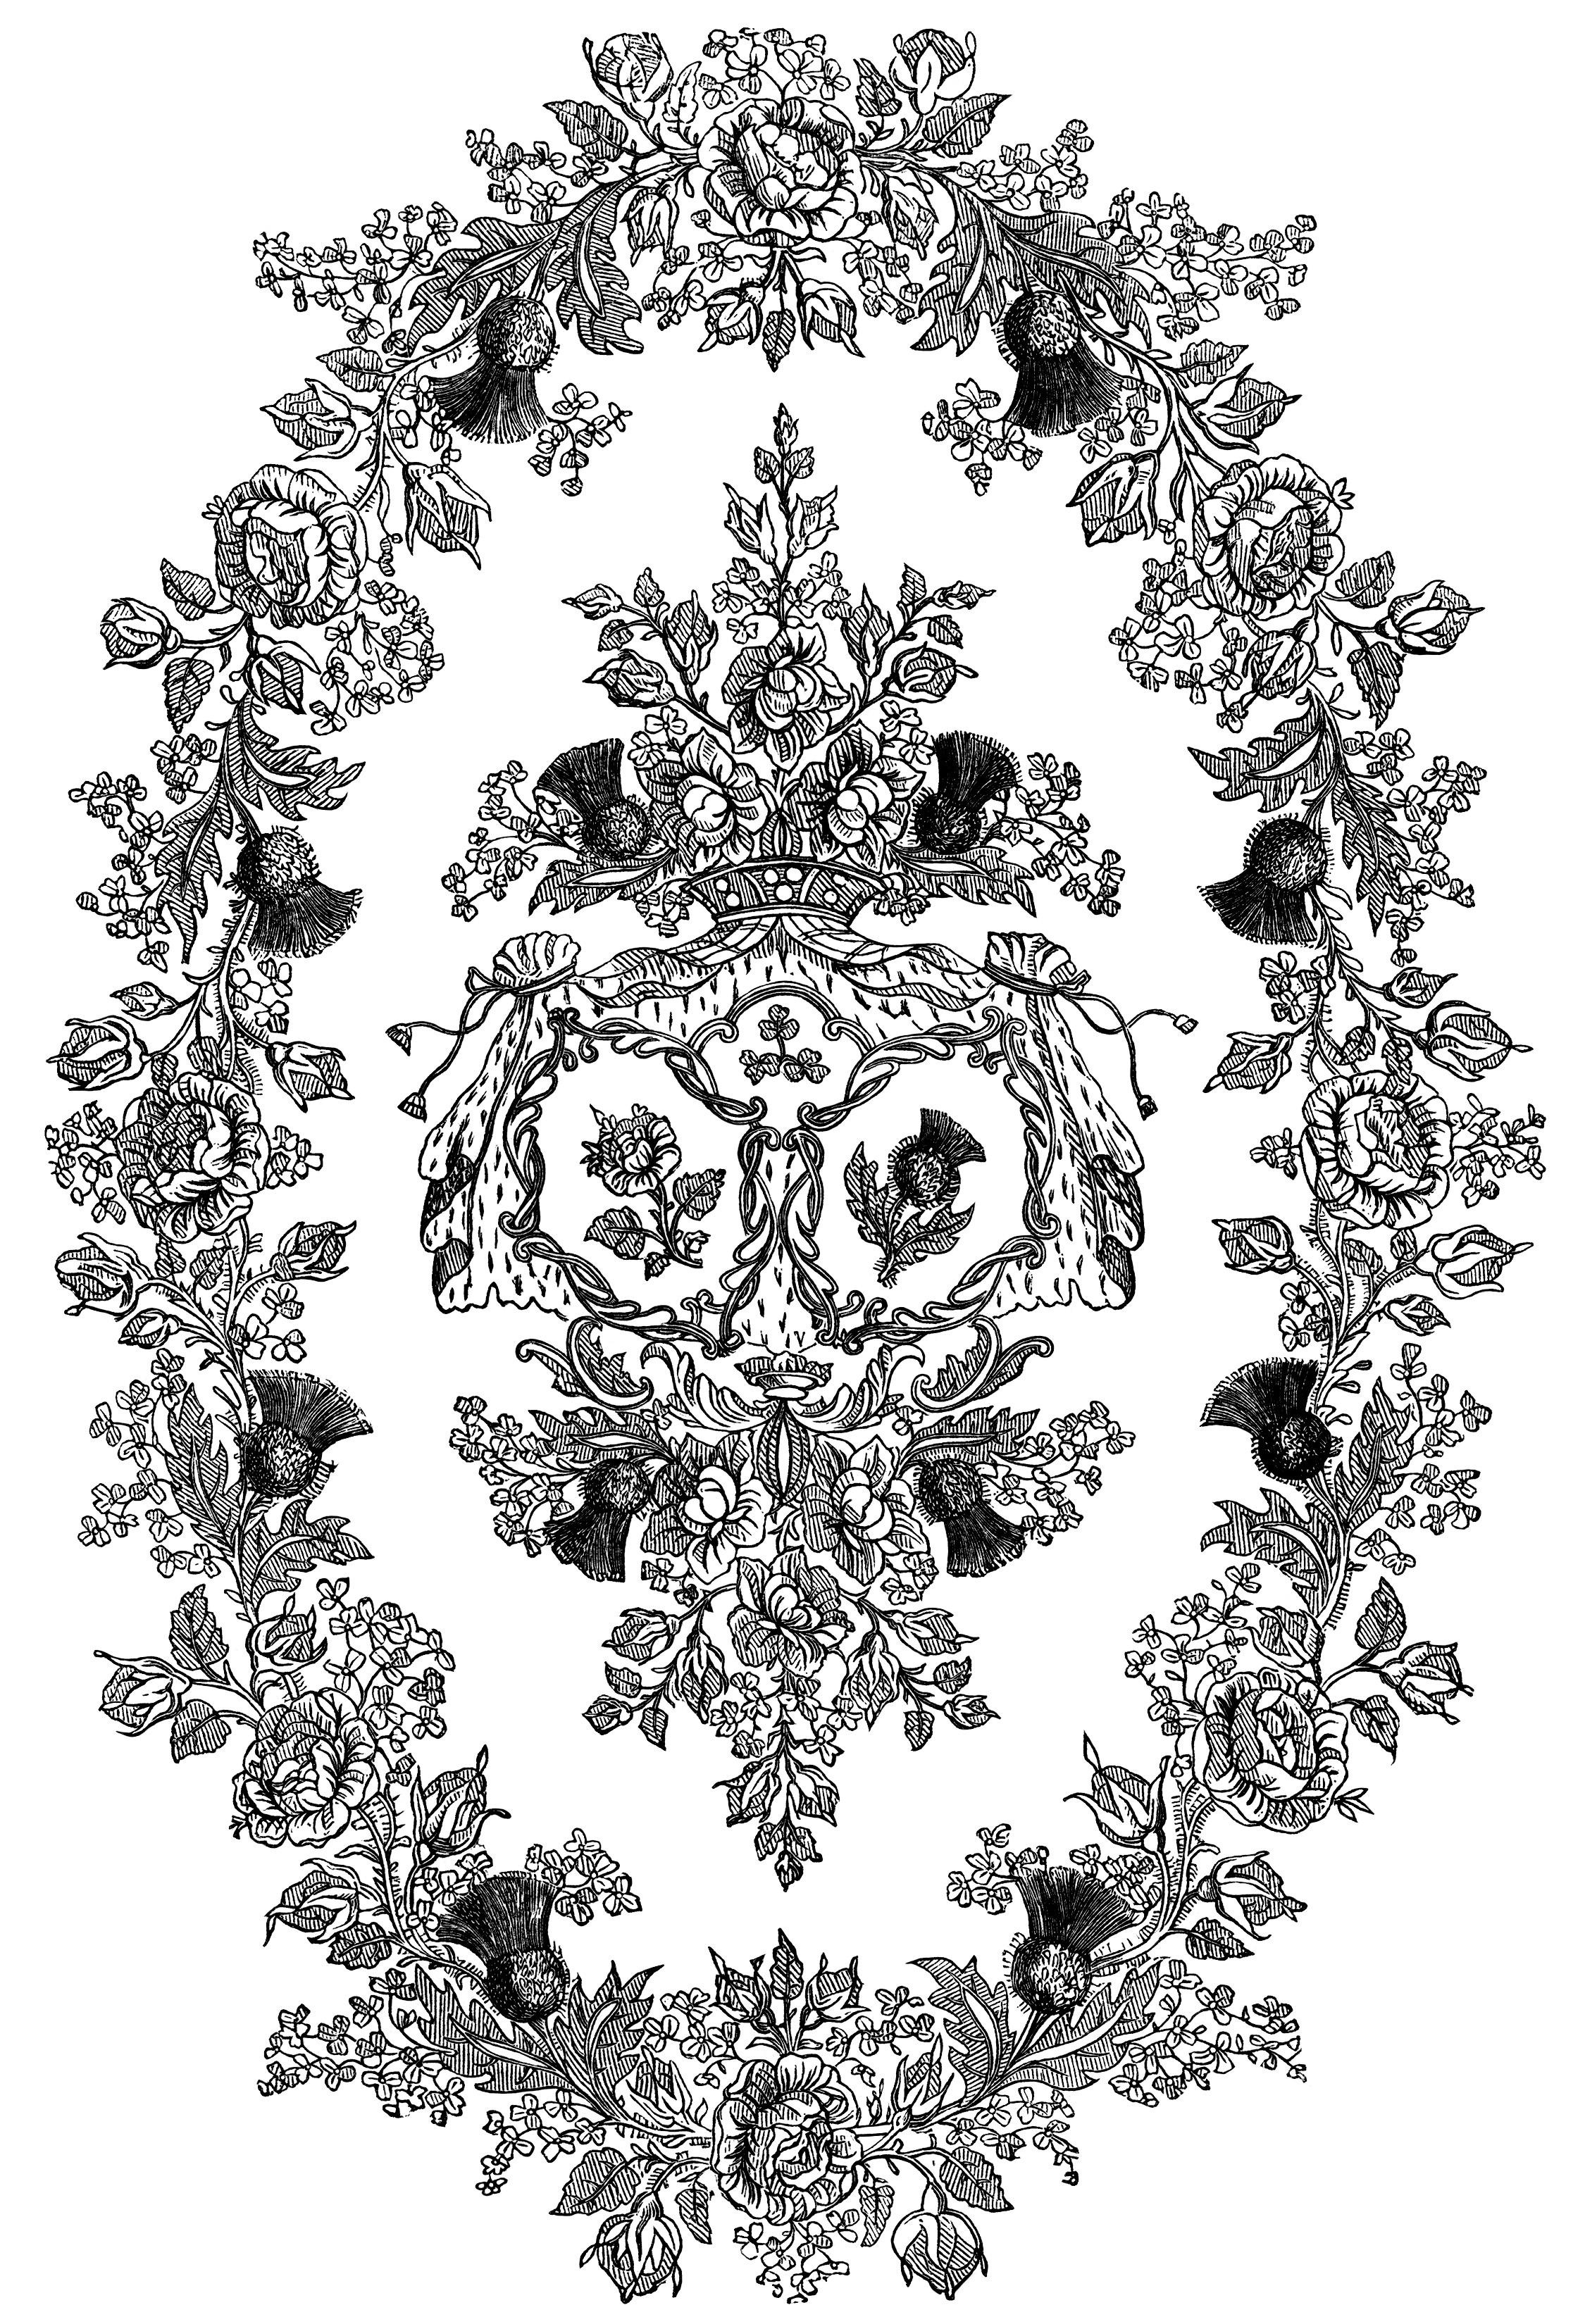 black and white clipart, ornamental floral illustration, ornate swirl design, vintage frame engraving, point embroidery pattern, vintage embroidery design